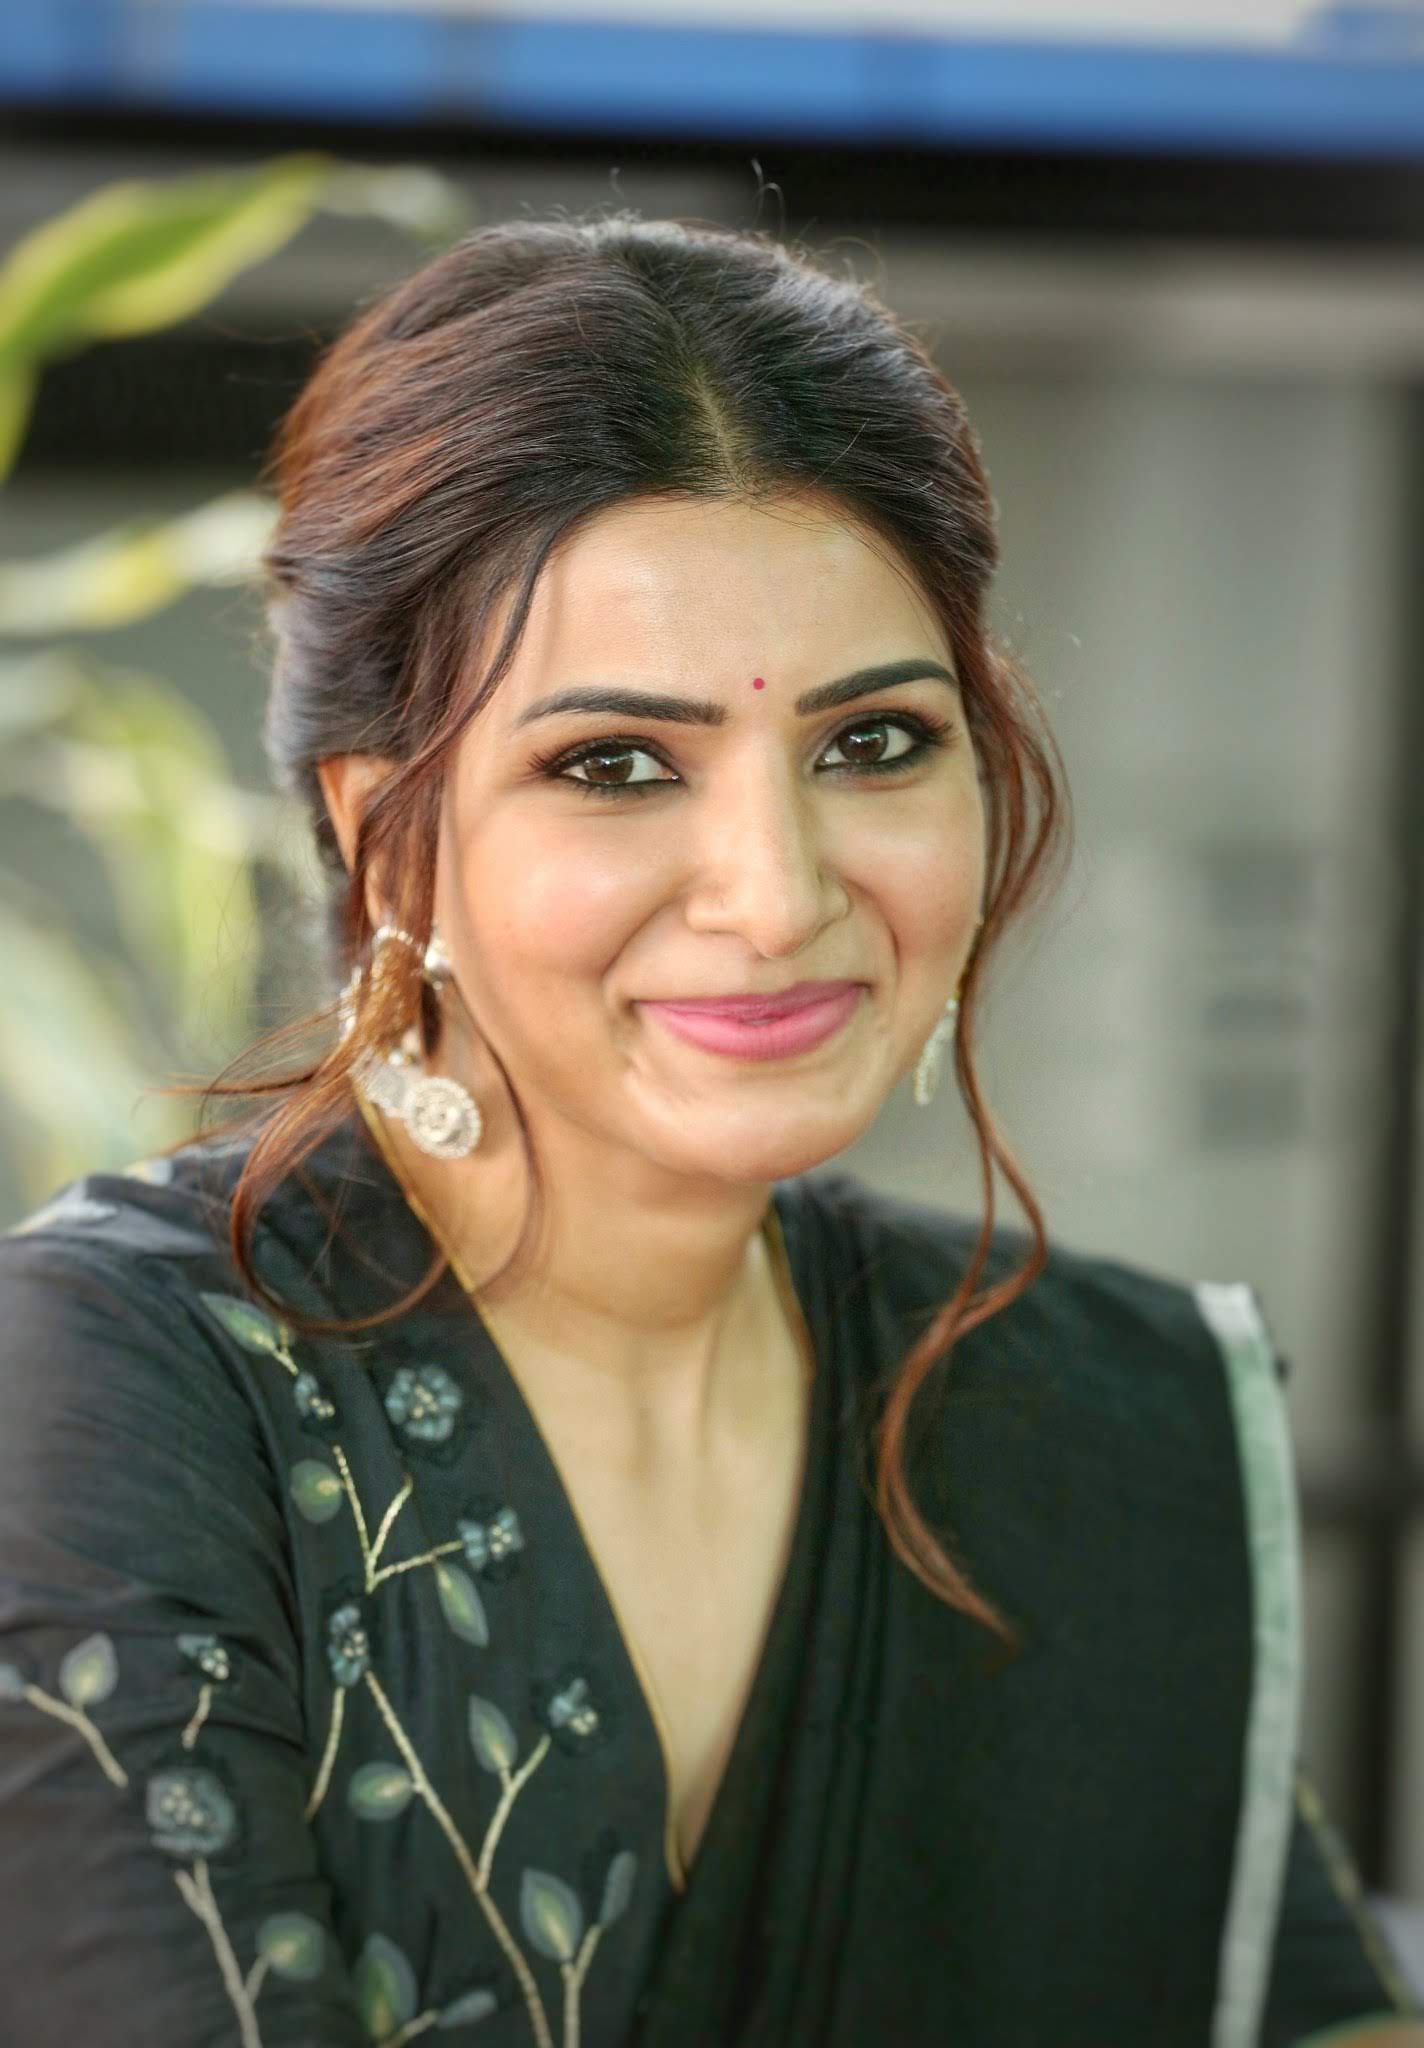 samantha-latest-92195